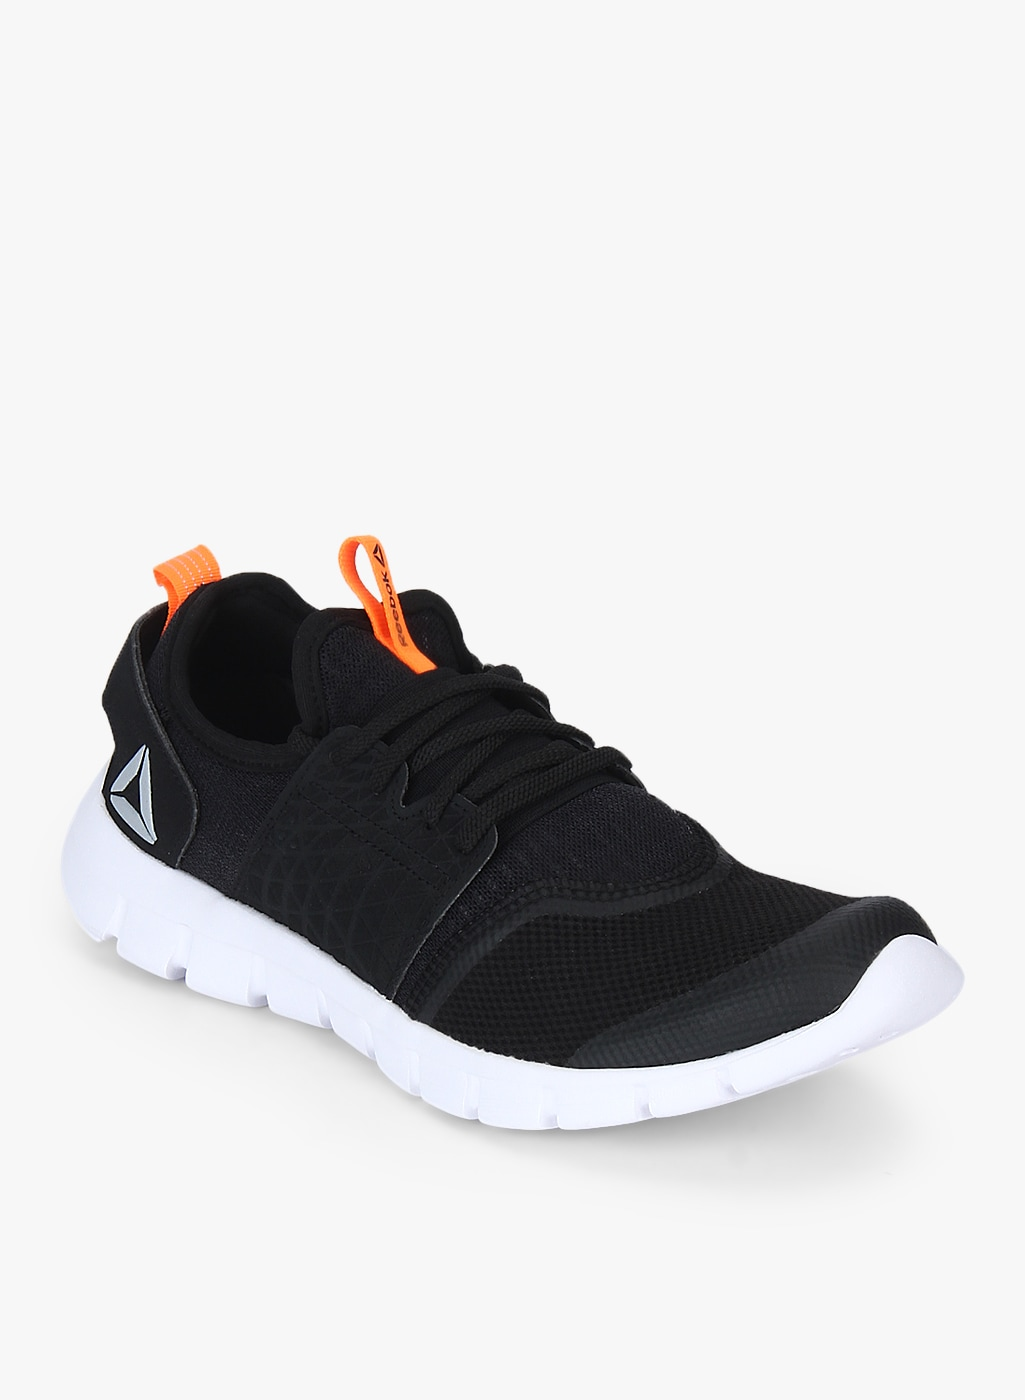 6d3f7958a1afbc Sports Shoes for Men - Buy Men Sports Shoes Online in India - Myntra